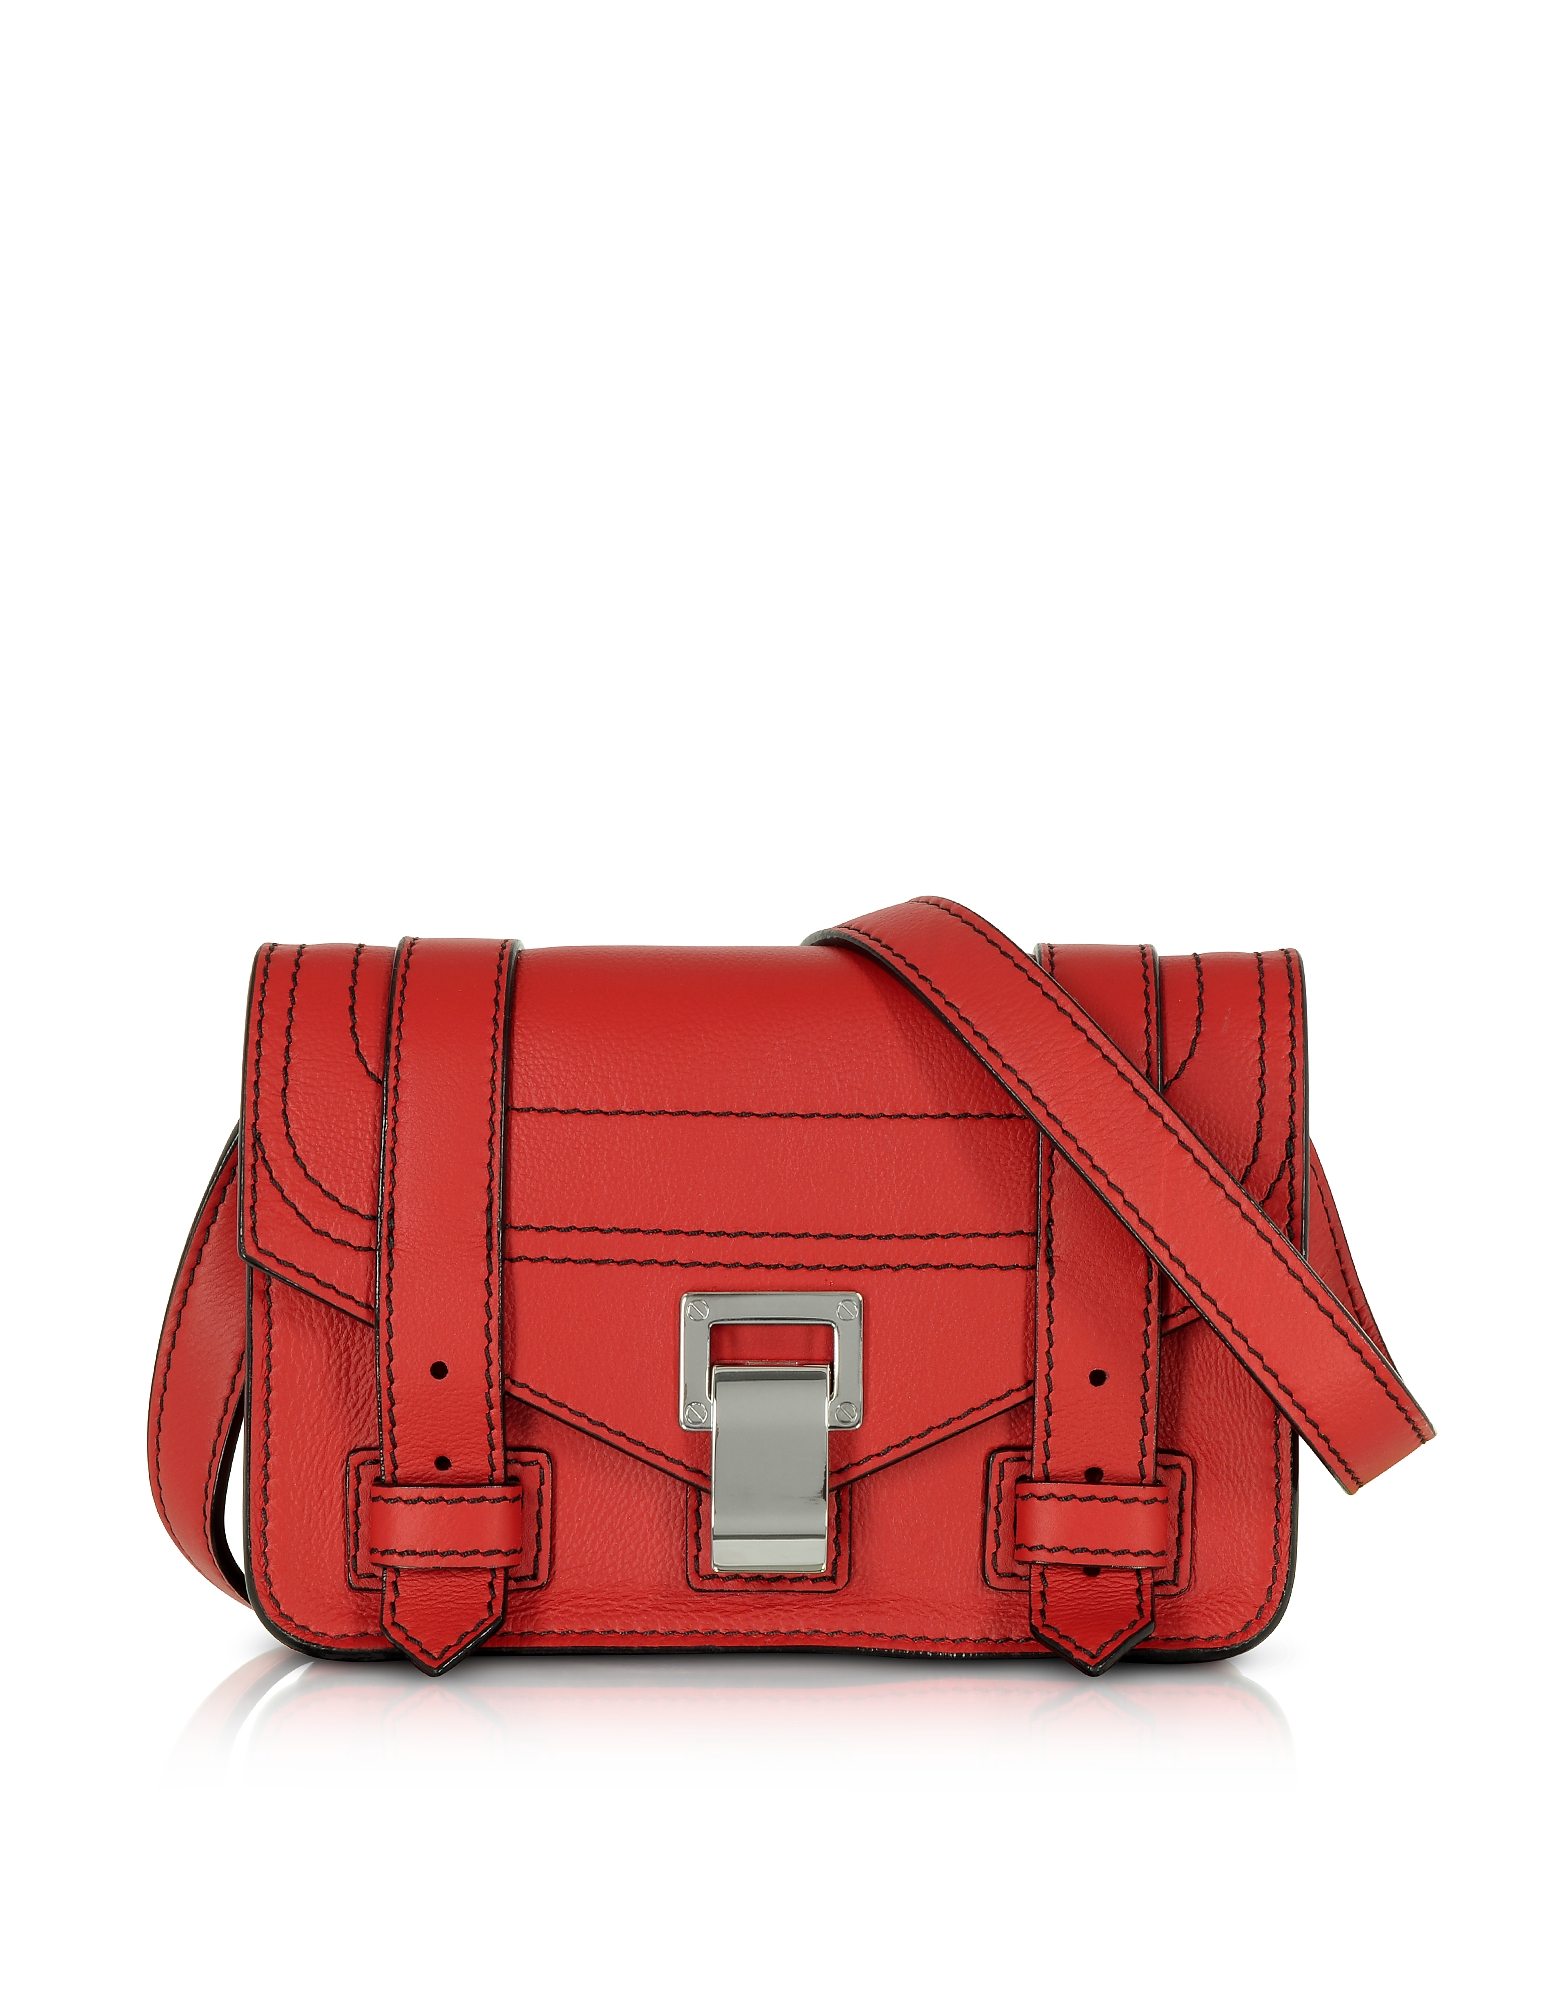 Proenza Schouler Handbags, PS1+ Cardinal Grainy Leather Mini Crossbody Bag